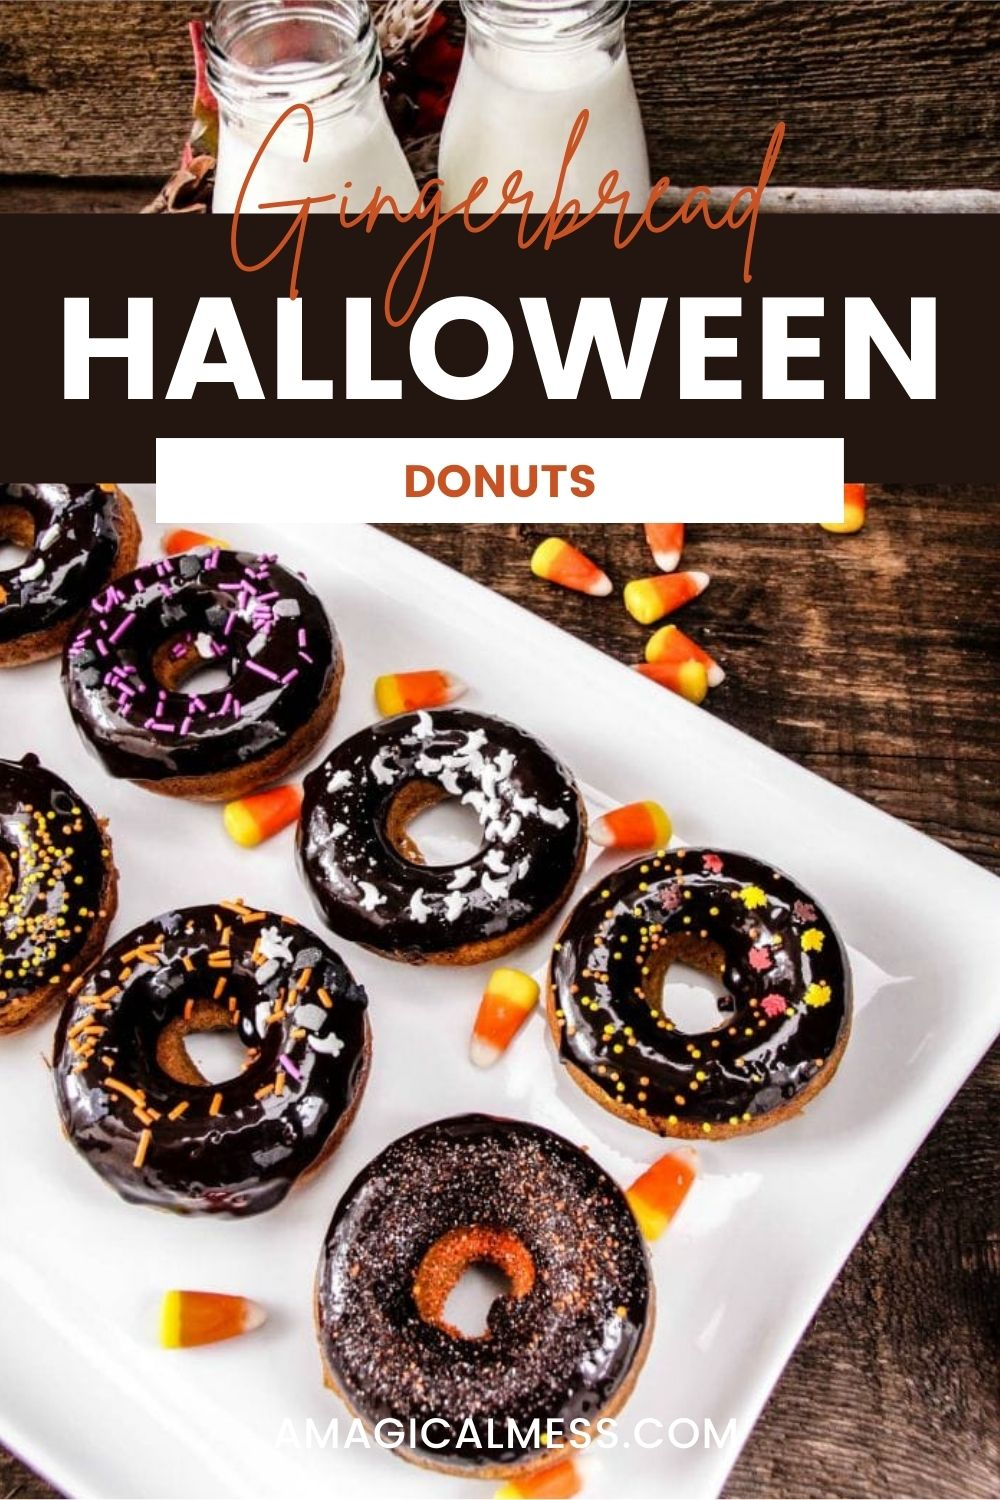 Dark chocolate donuts with halloween sprinkles on a plate.